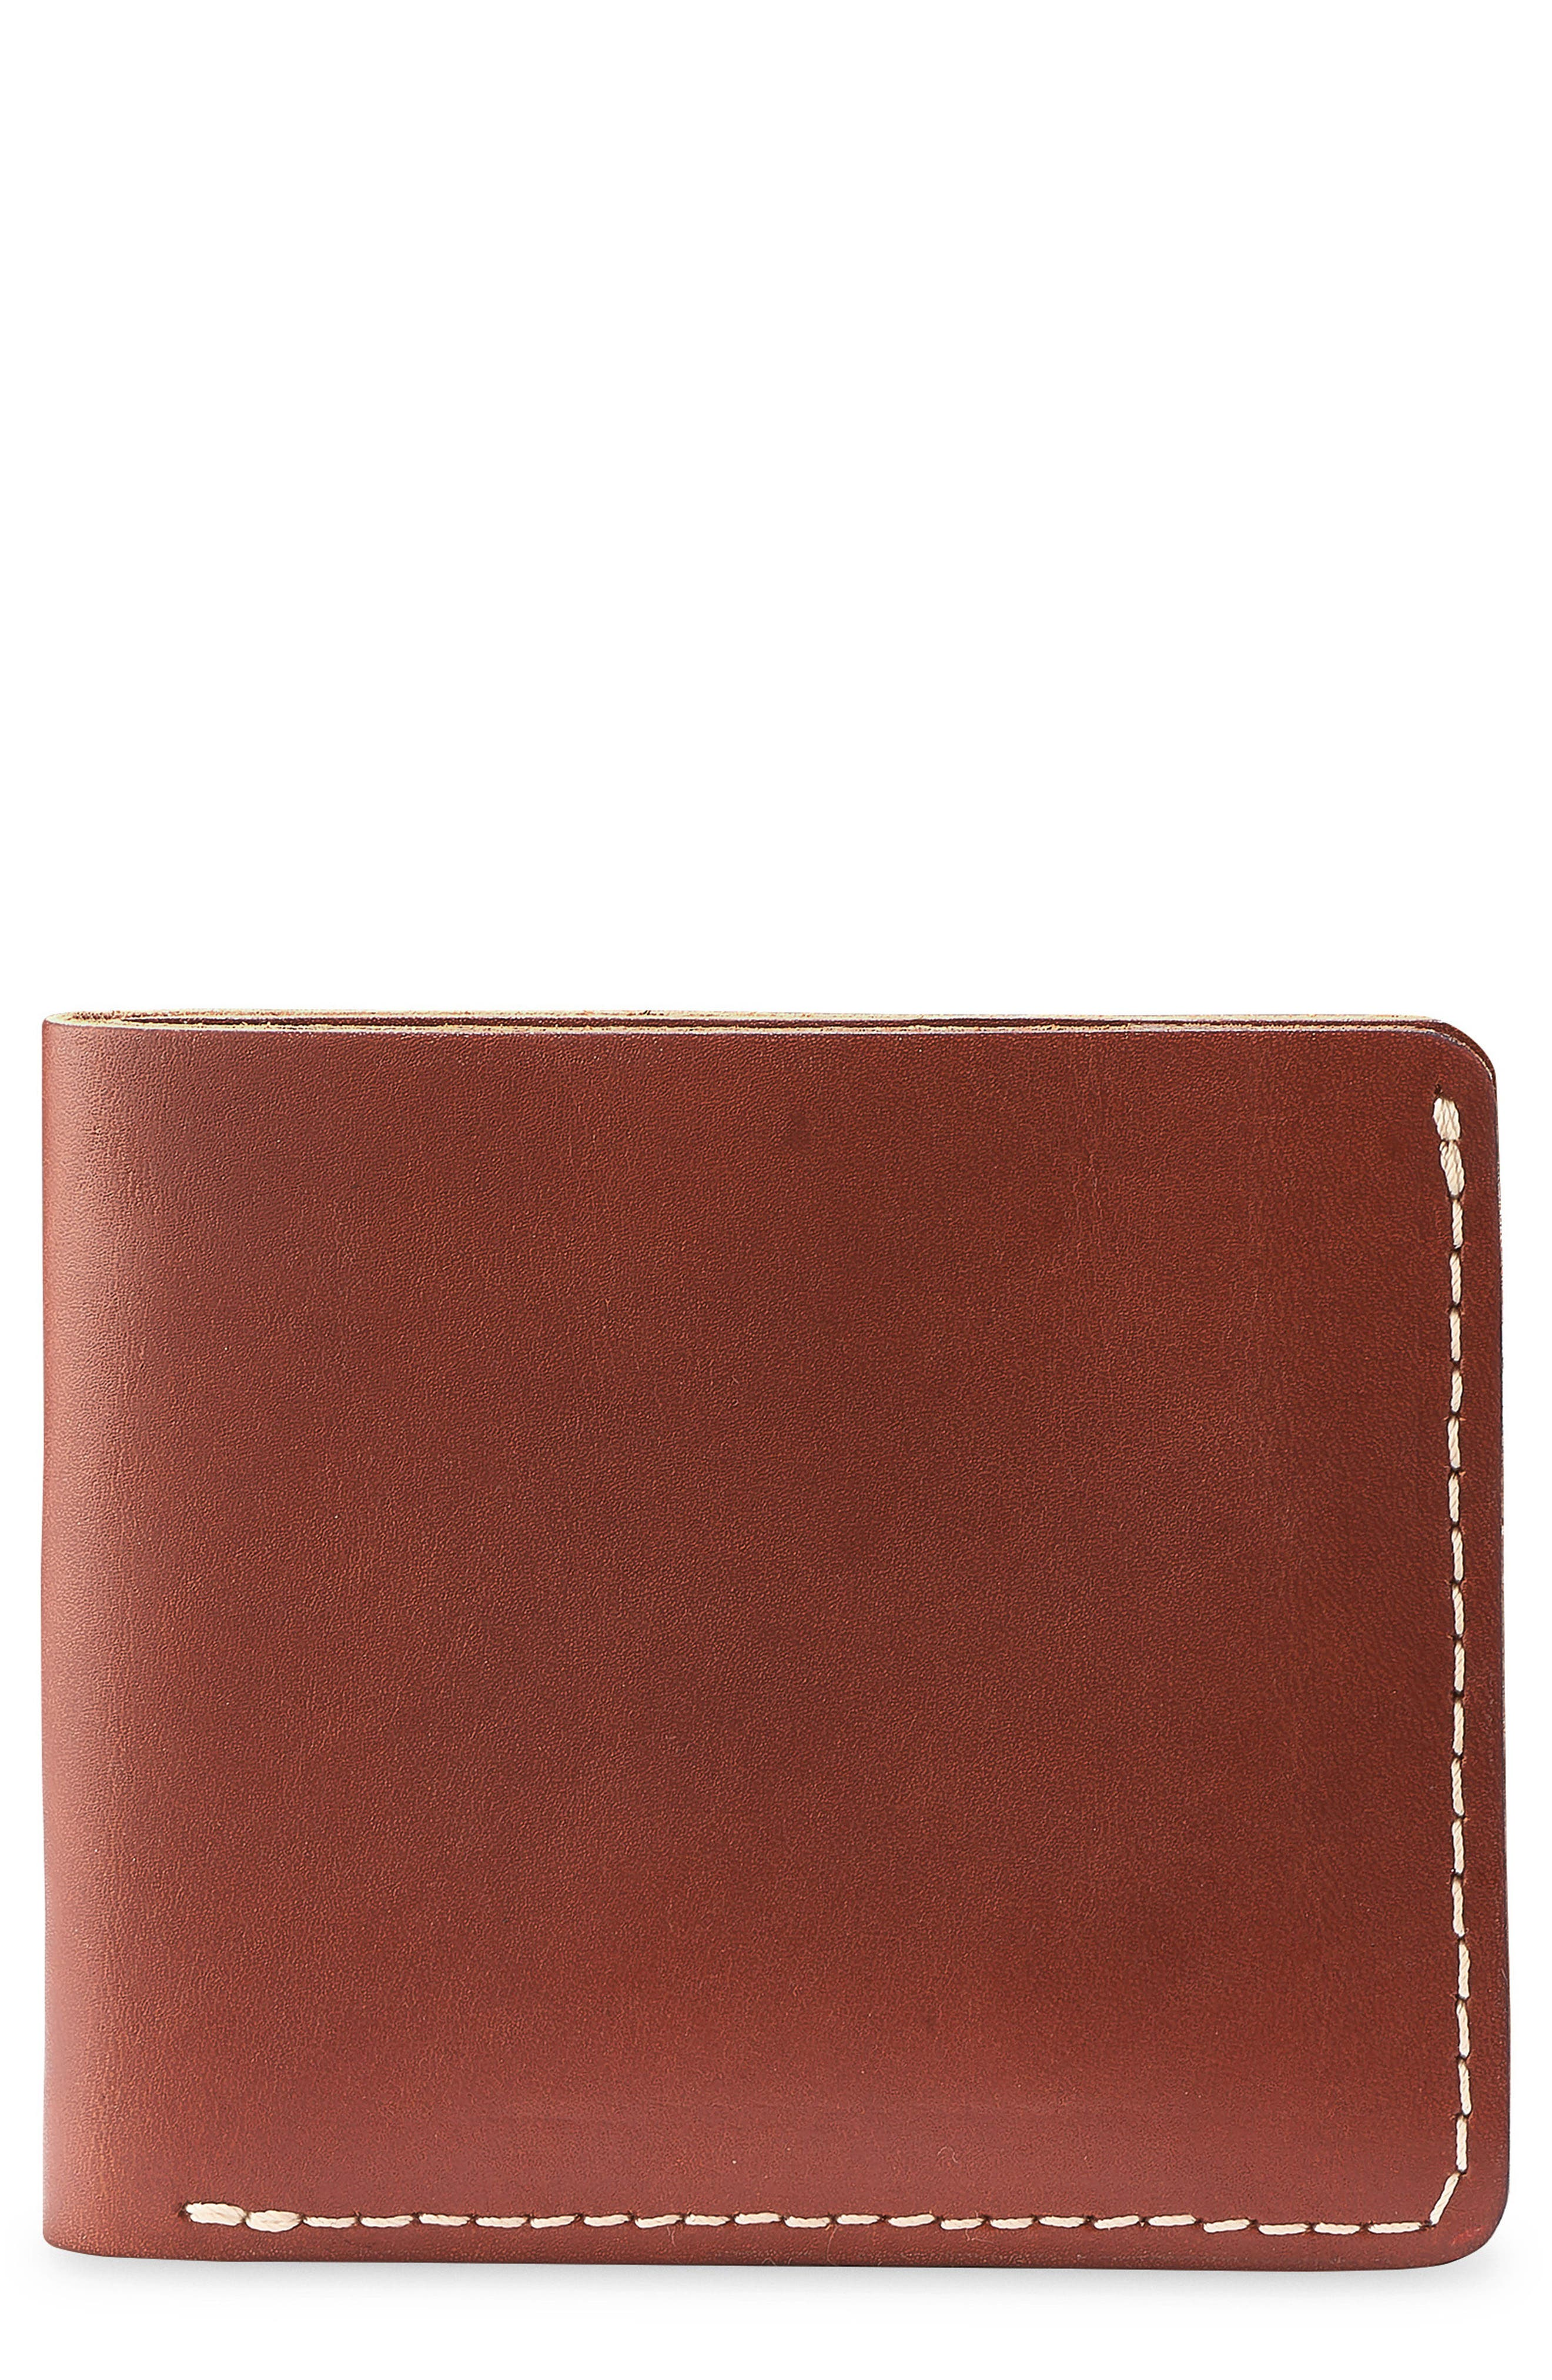 Classic Bifold Leather Wallet,                             Main thumbnail 1, color,                             Oro Russet